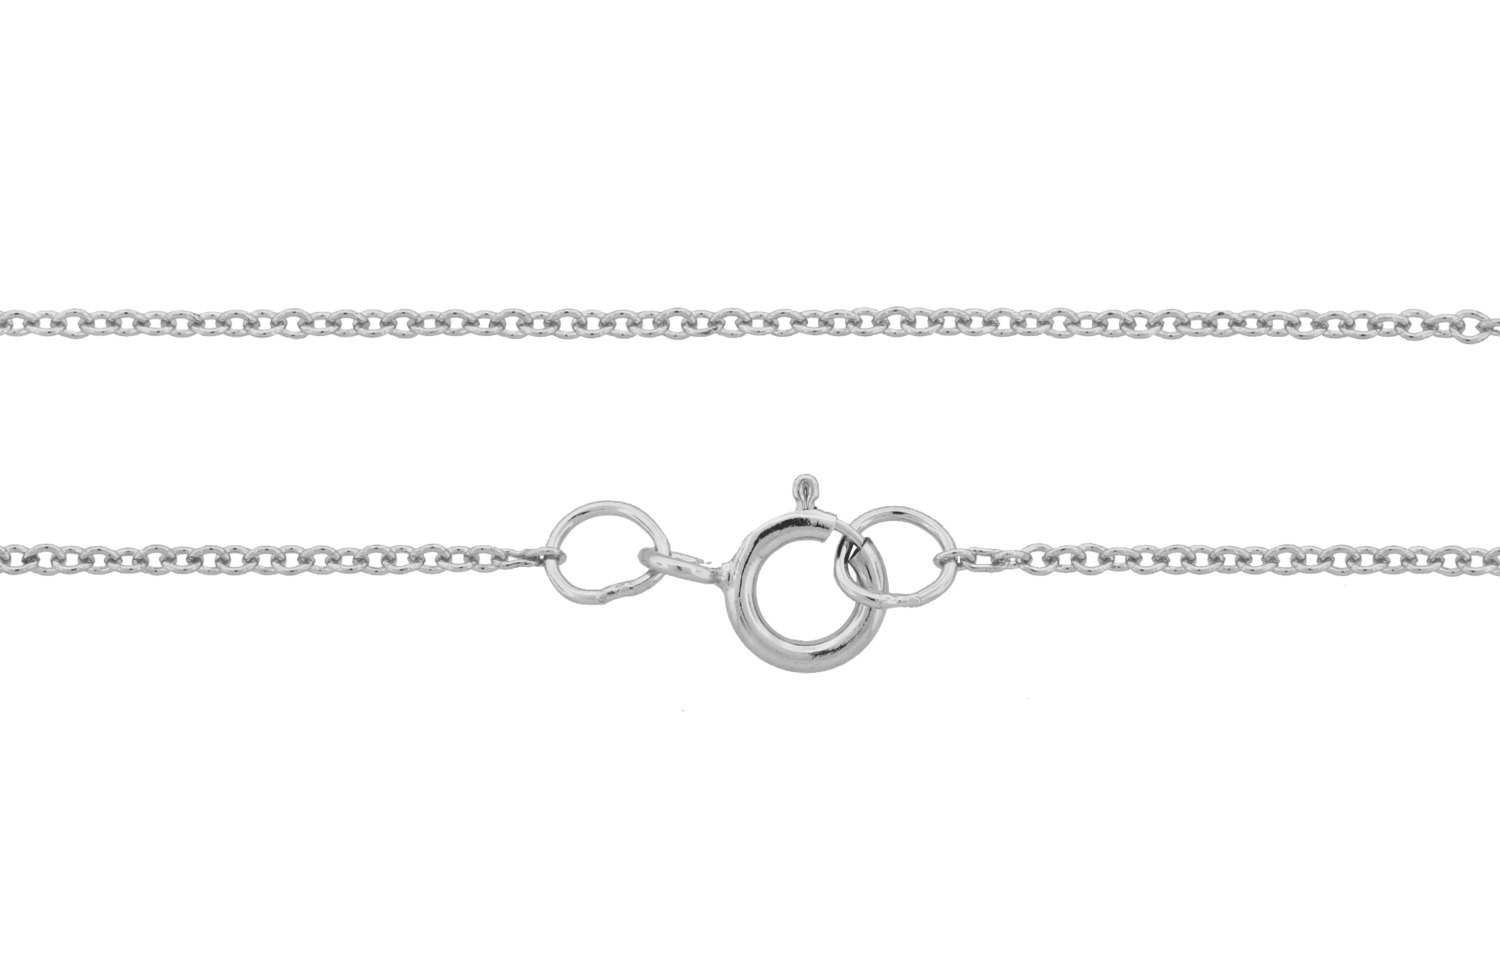 "Primary image for Chain, Cable  W/ Spring Ring Clasp, Sterling Silver, 1.2mm 18"", 25pcs (3338)/25"